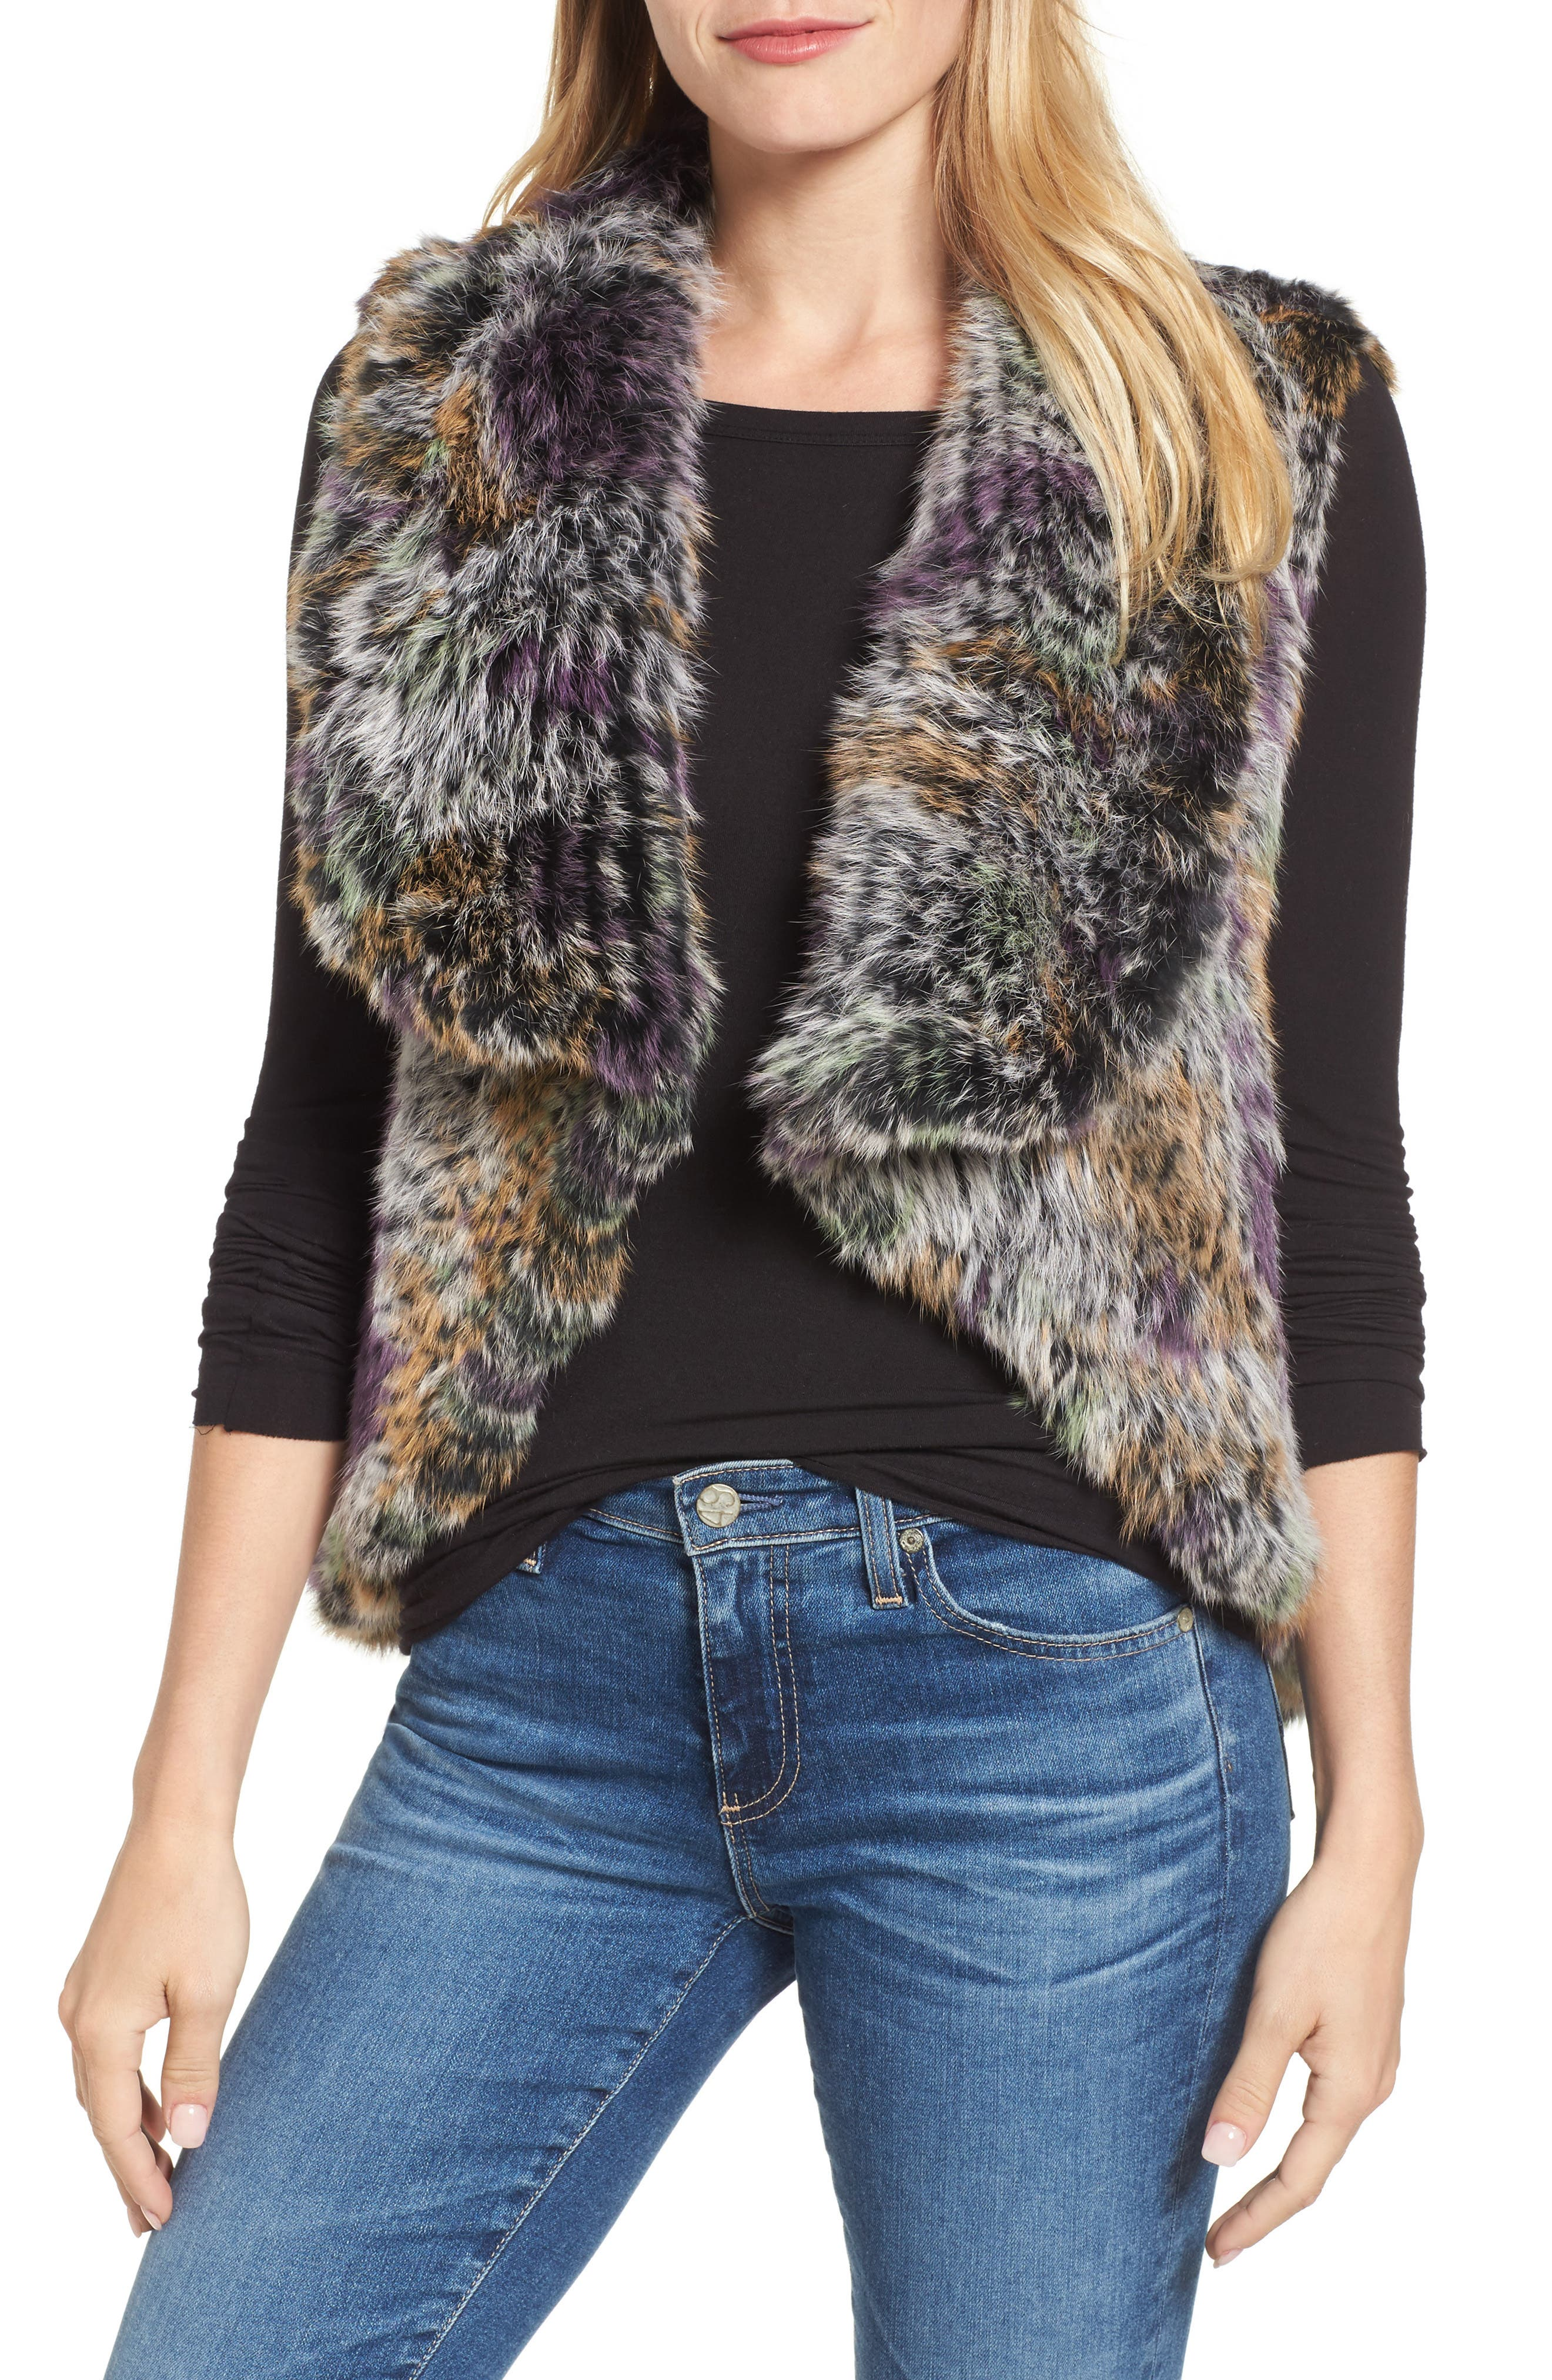 Main Image - Blue Duck Woven Genuine Rabbit Fur Vest